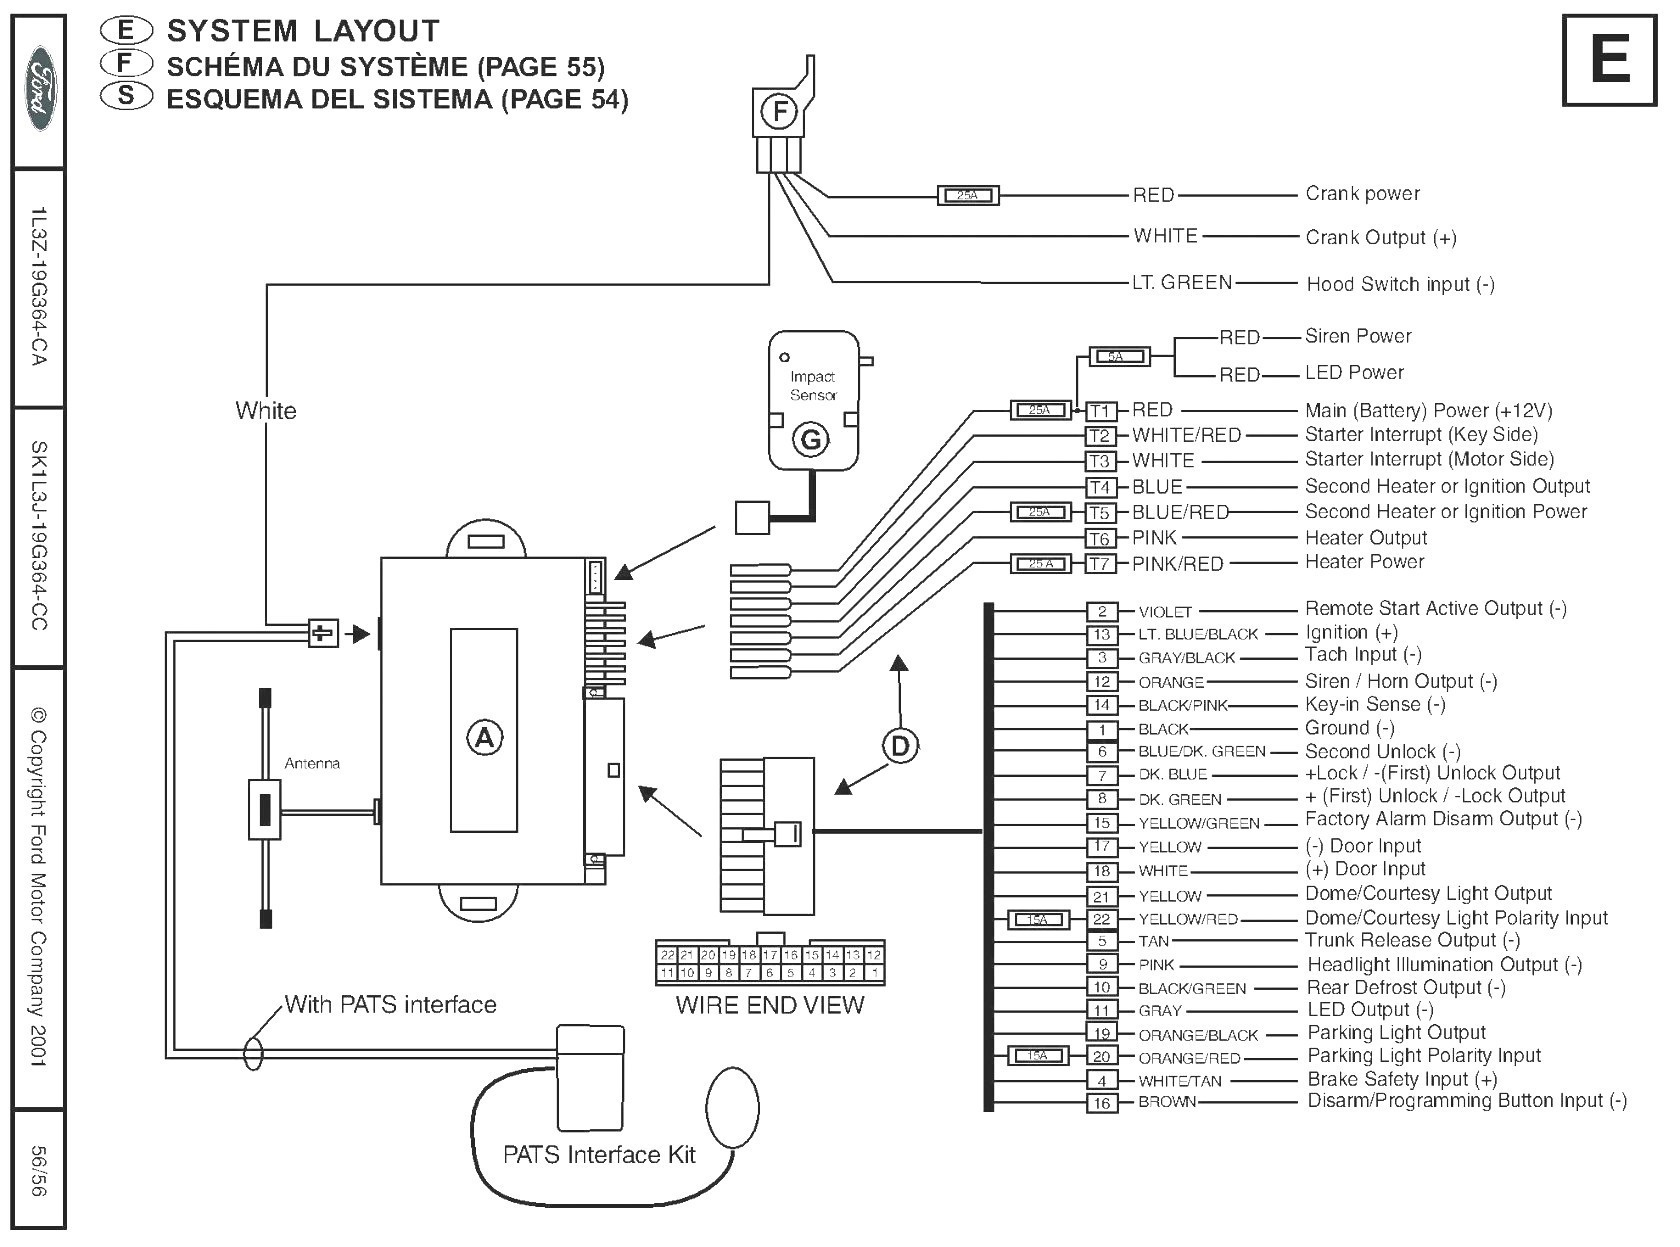 vita spa l200 wiring diagram Collection-spa wiring diagram likewise 2004 ski doo mxz 600 wiring diagram rh dododeli co 11-s